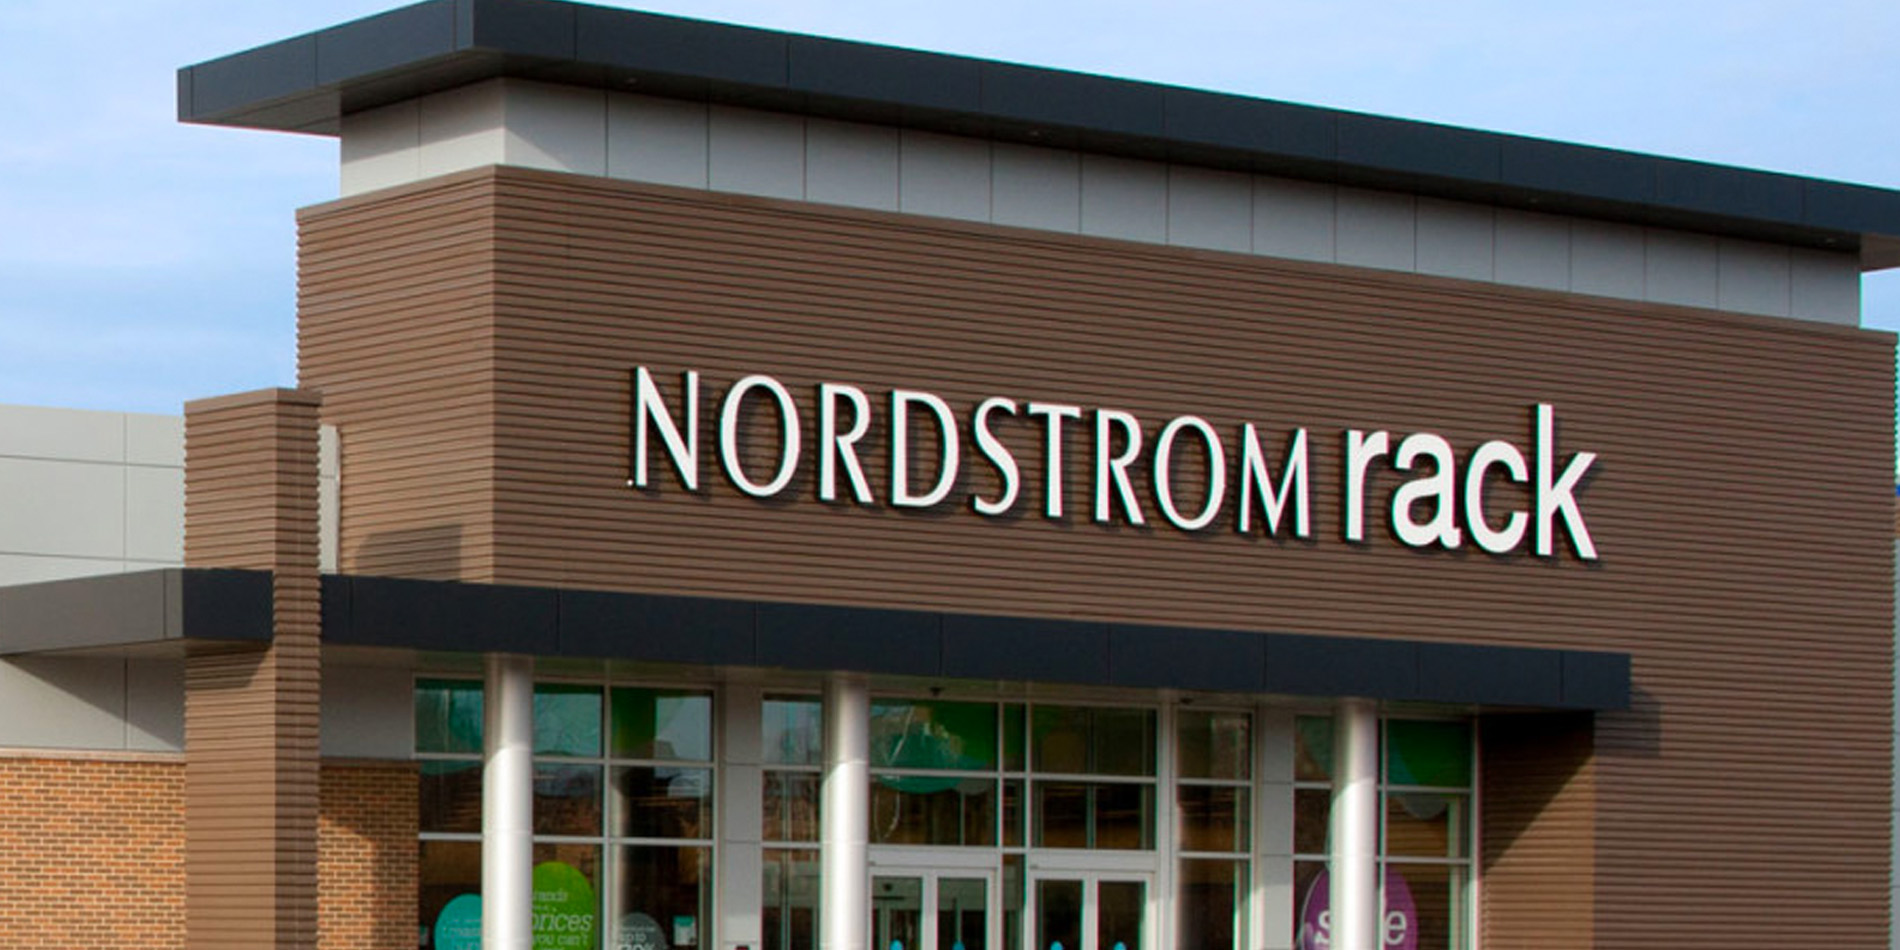 Nordstroms Pre-Black Friday Sale Includes Tons of Comfy, Podiatrist-Approved Boots